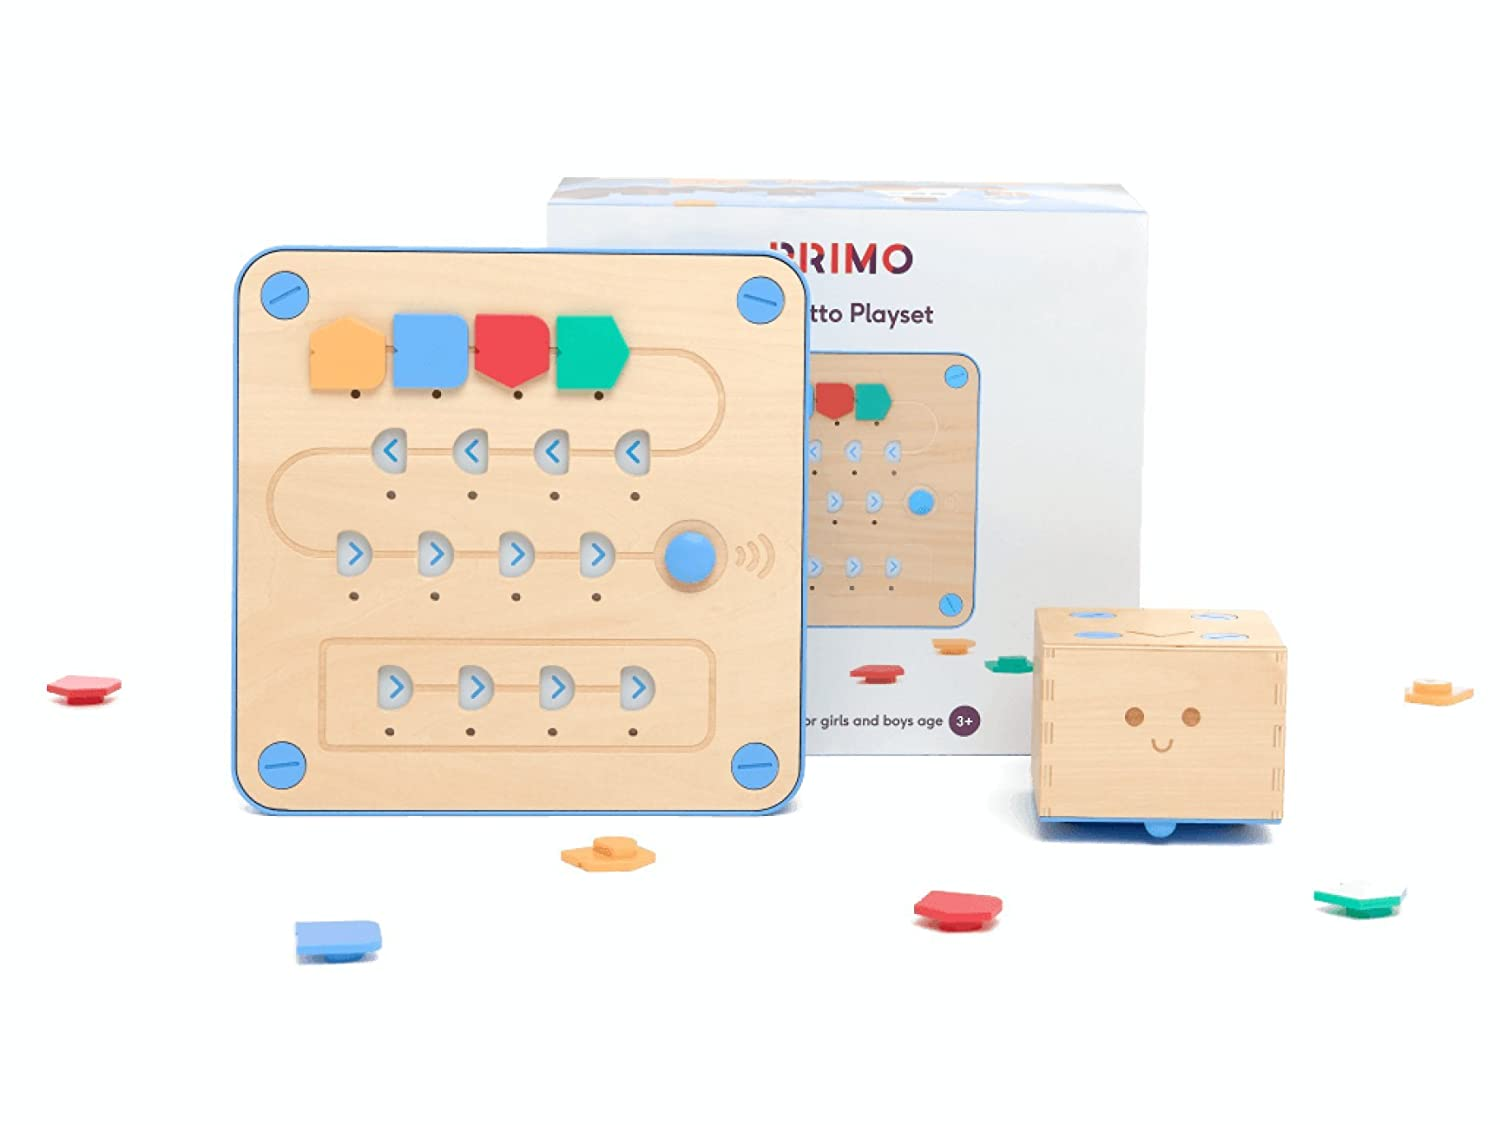 Primo Toys Cubetto Playset | Screenless Coding Toy for Children Aged 3-6 SolidLabs 1